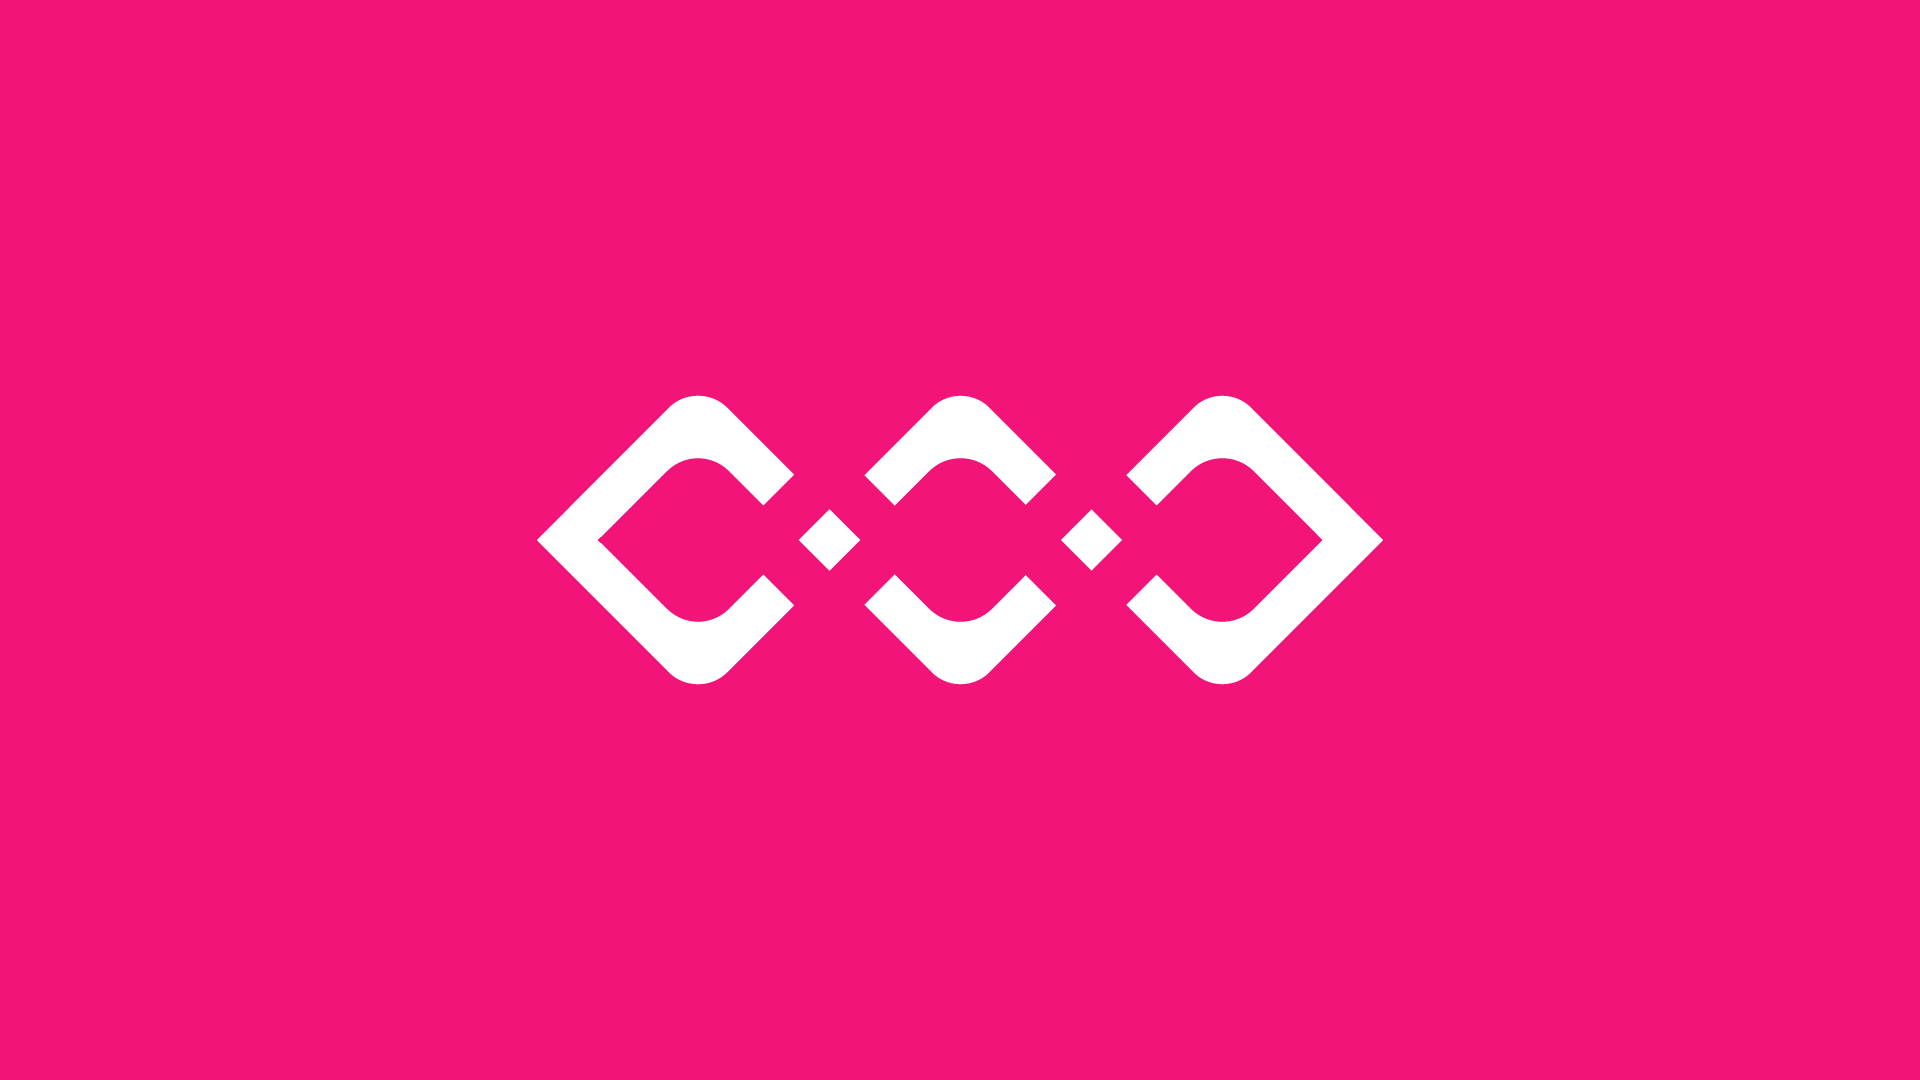 CF-Motion-pink-01.png